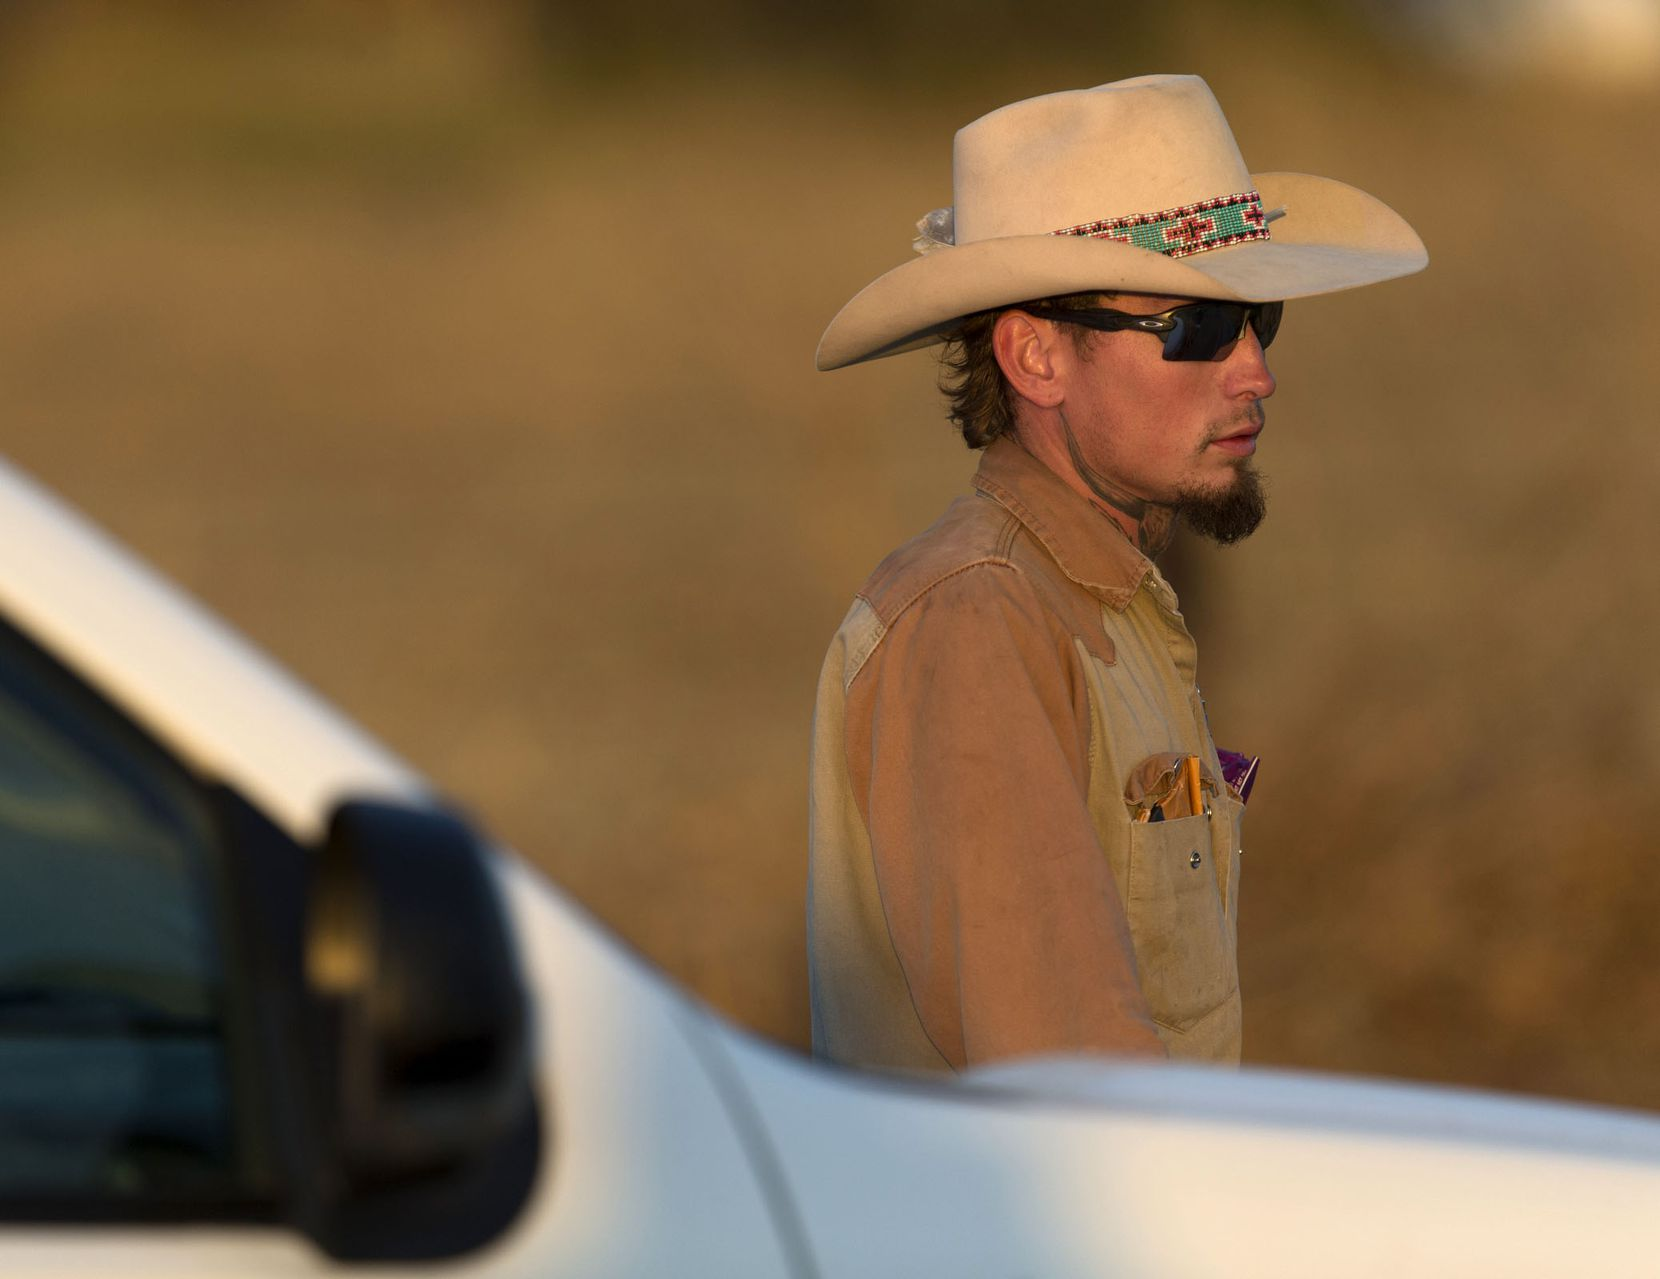 Johnny Langendorff, who was one of the men who said they pursued Devin Kelly after a deadly church shooting, waits to be picked up from the scene where Kelley was found dead near the intersection of FM539 and Sandy Elm Road in Guadalupe County.